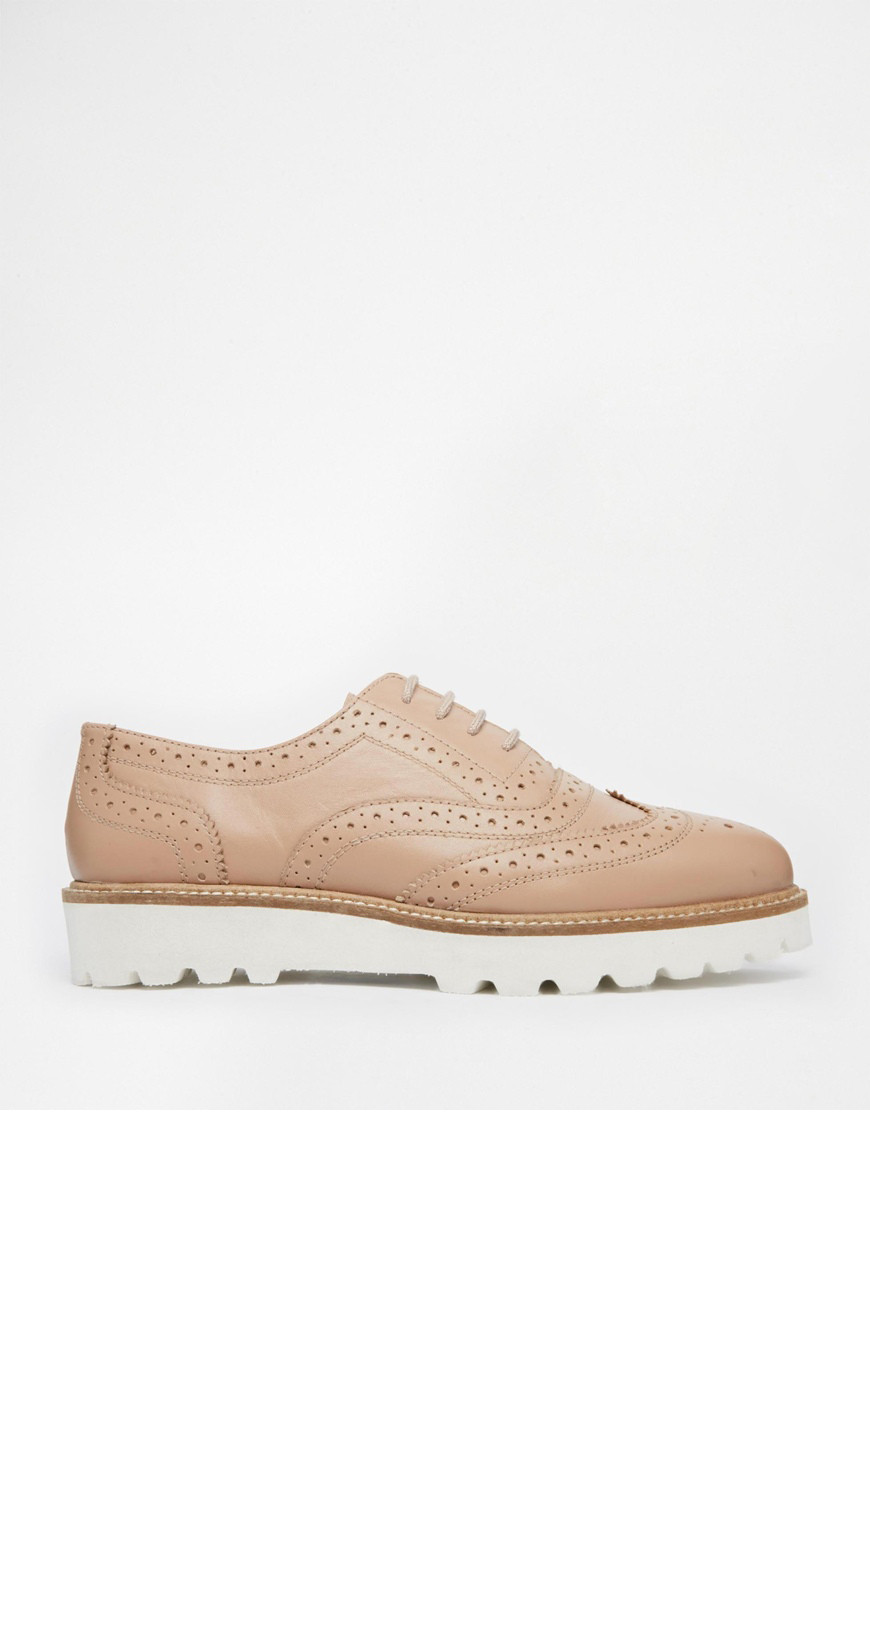 Asos / Matched - Derbies